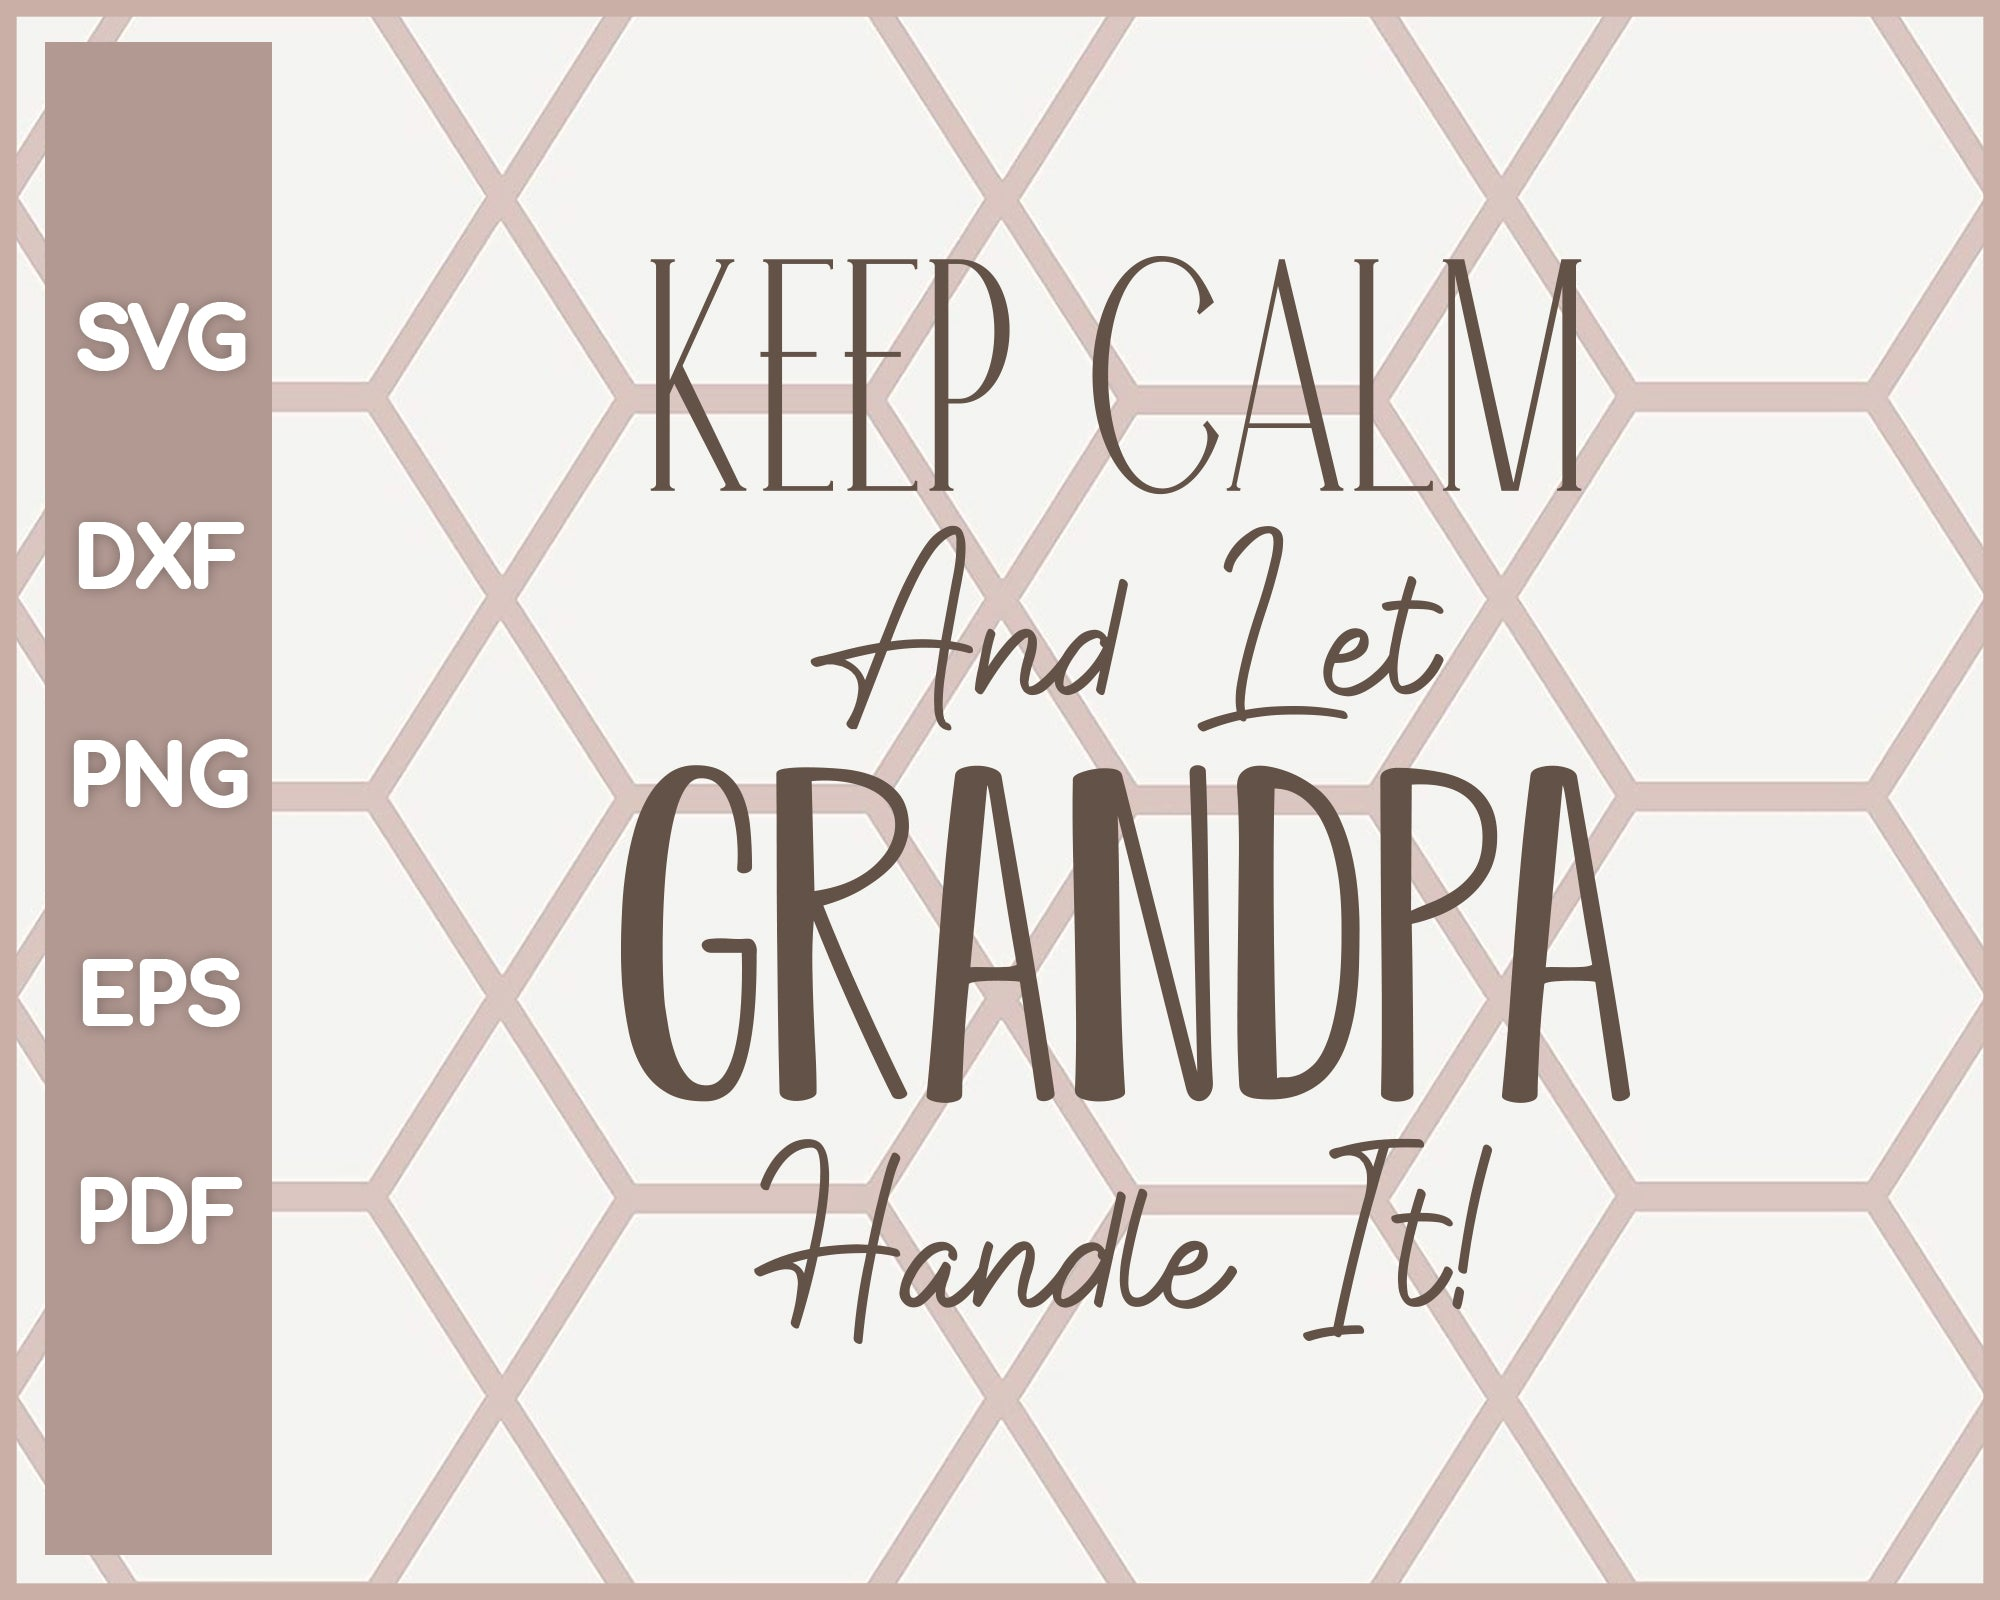 Keep Calm And Let Grandpa Funny svg Cut File For Cricut Silhouette And eps png Printable Artworks